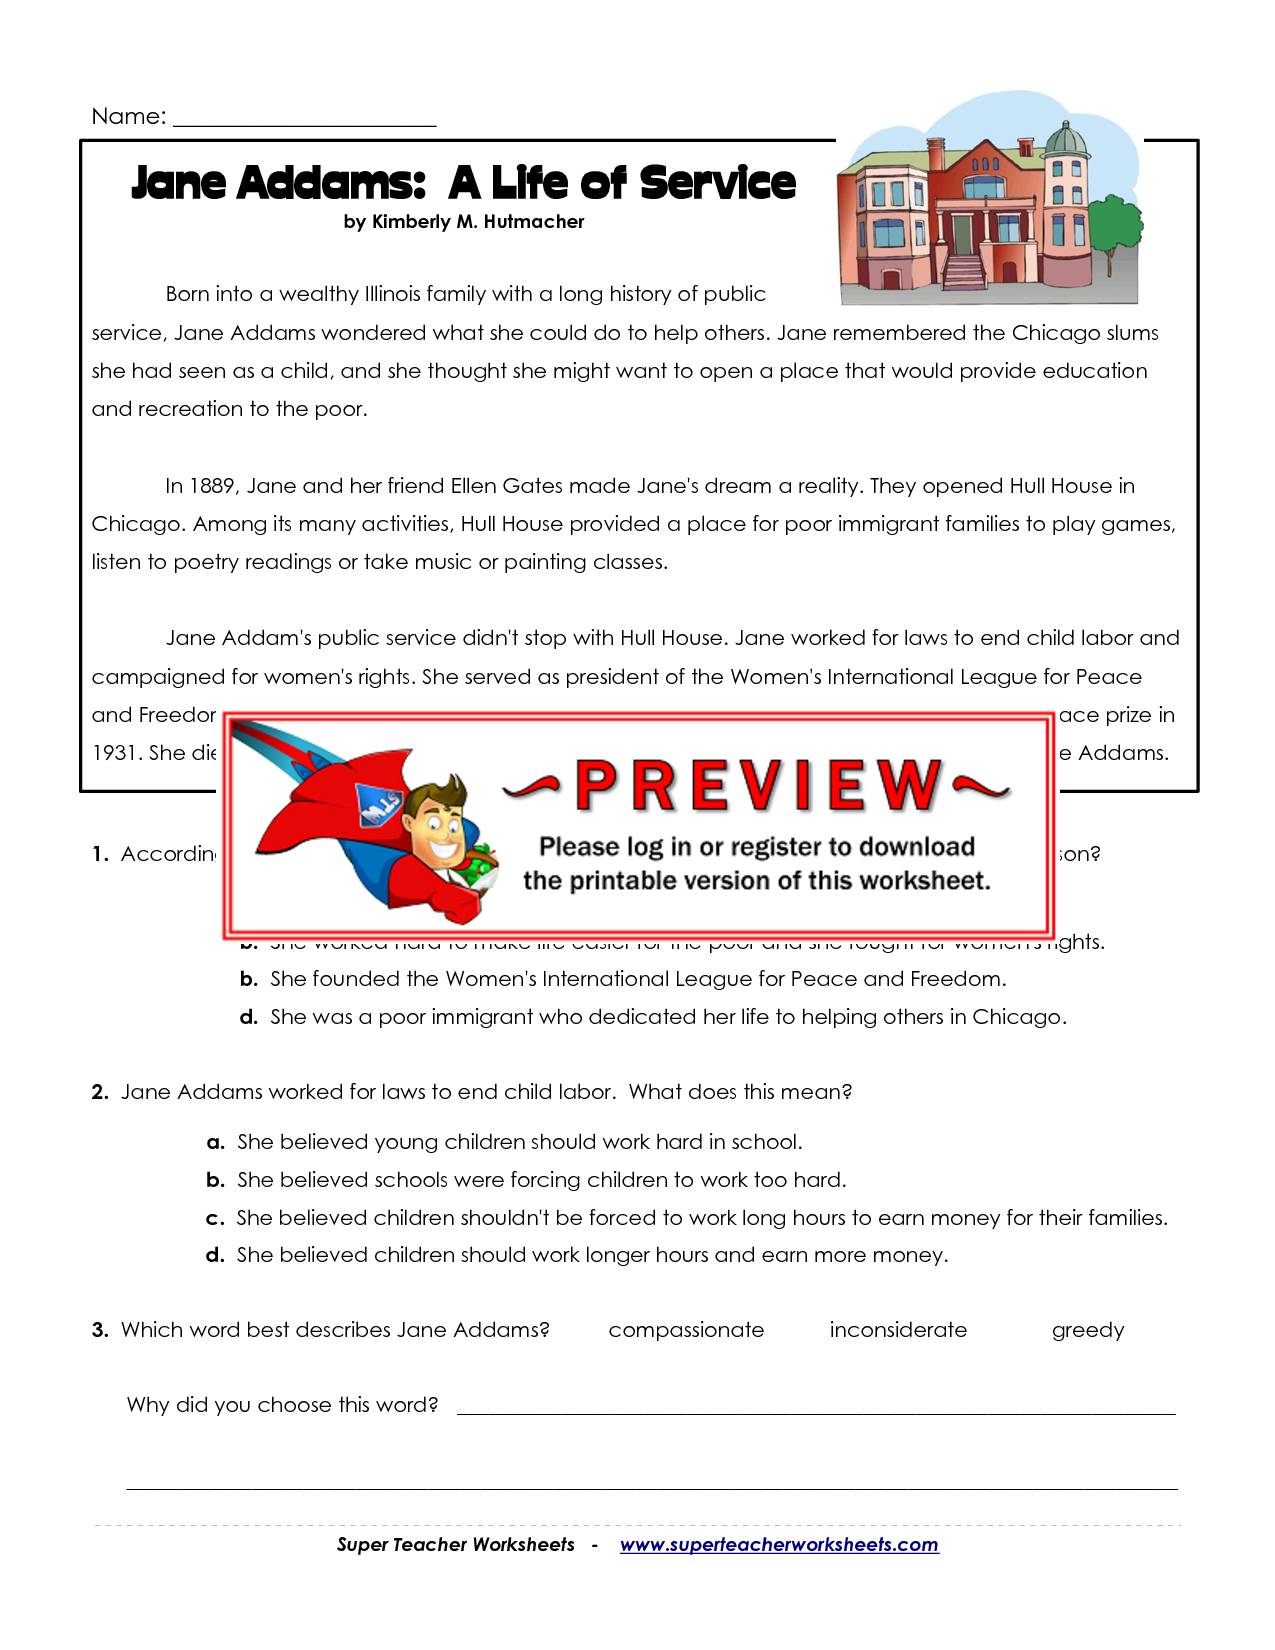 small resolution of Jane Addams A Life of Service - Super Teacher Worksheets   Super teacher  worksheets